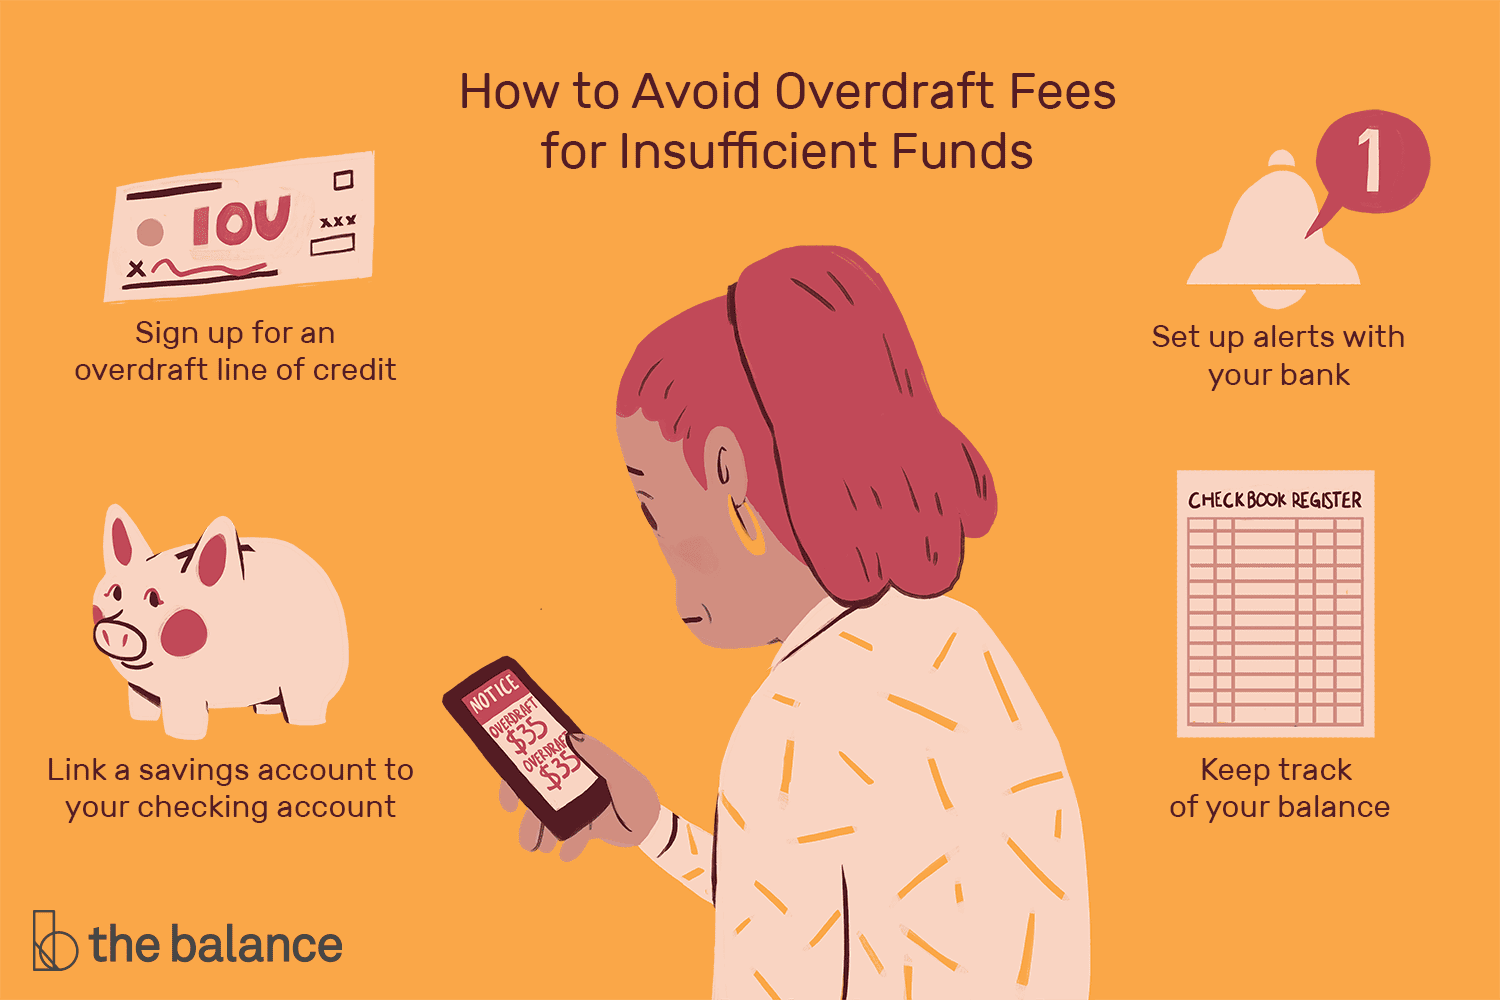 Whats The Purpose Of Balancing Or Monitoring Your Checking Account >> Avoid Overdraft Fees Due To Insufficient Funds